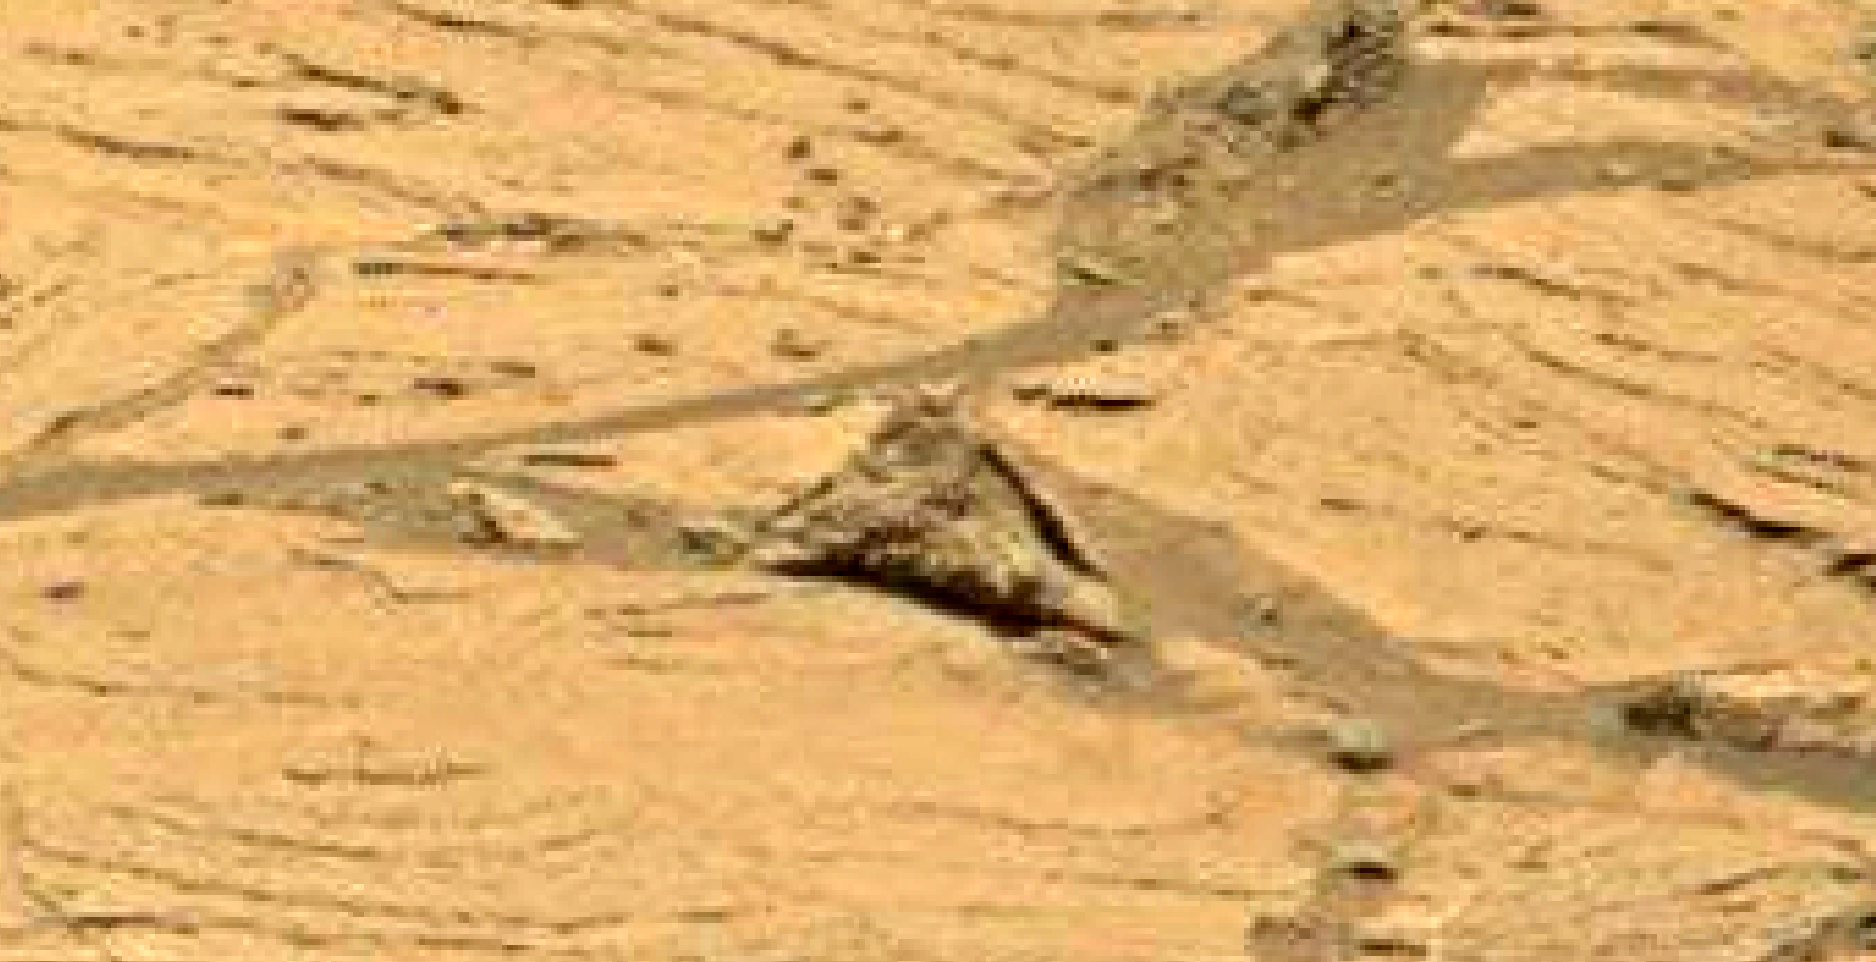 mars sol 1353 anomaly-artifacts 7 was life on mars